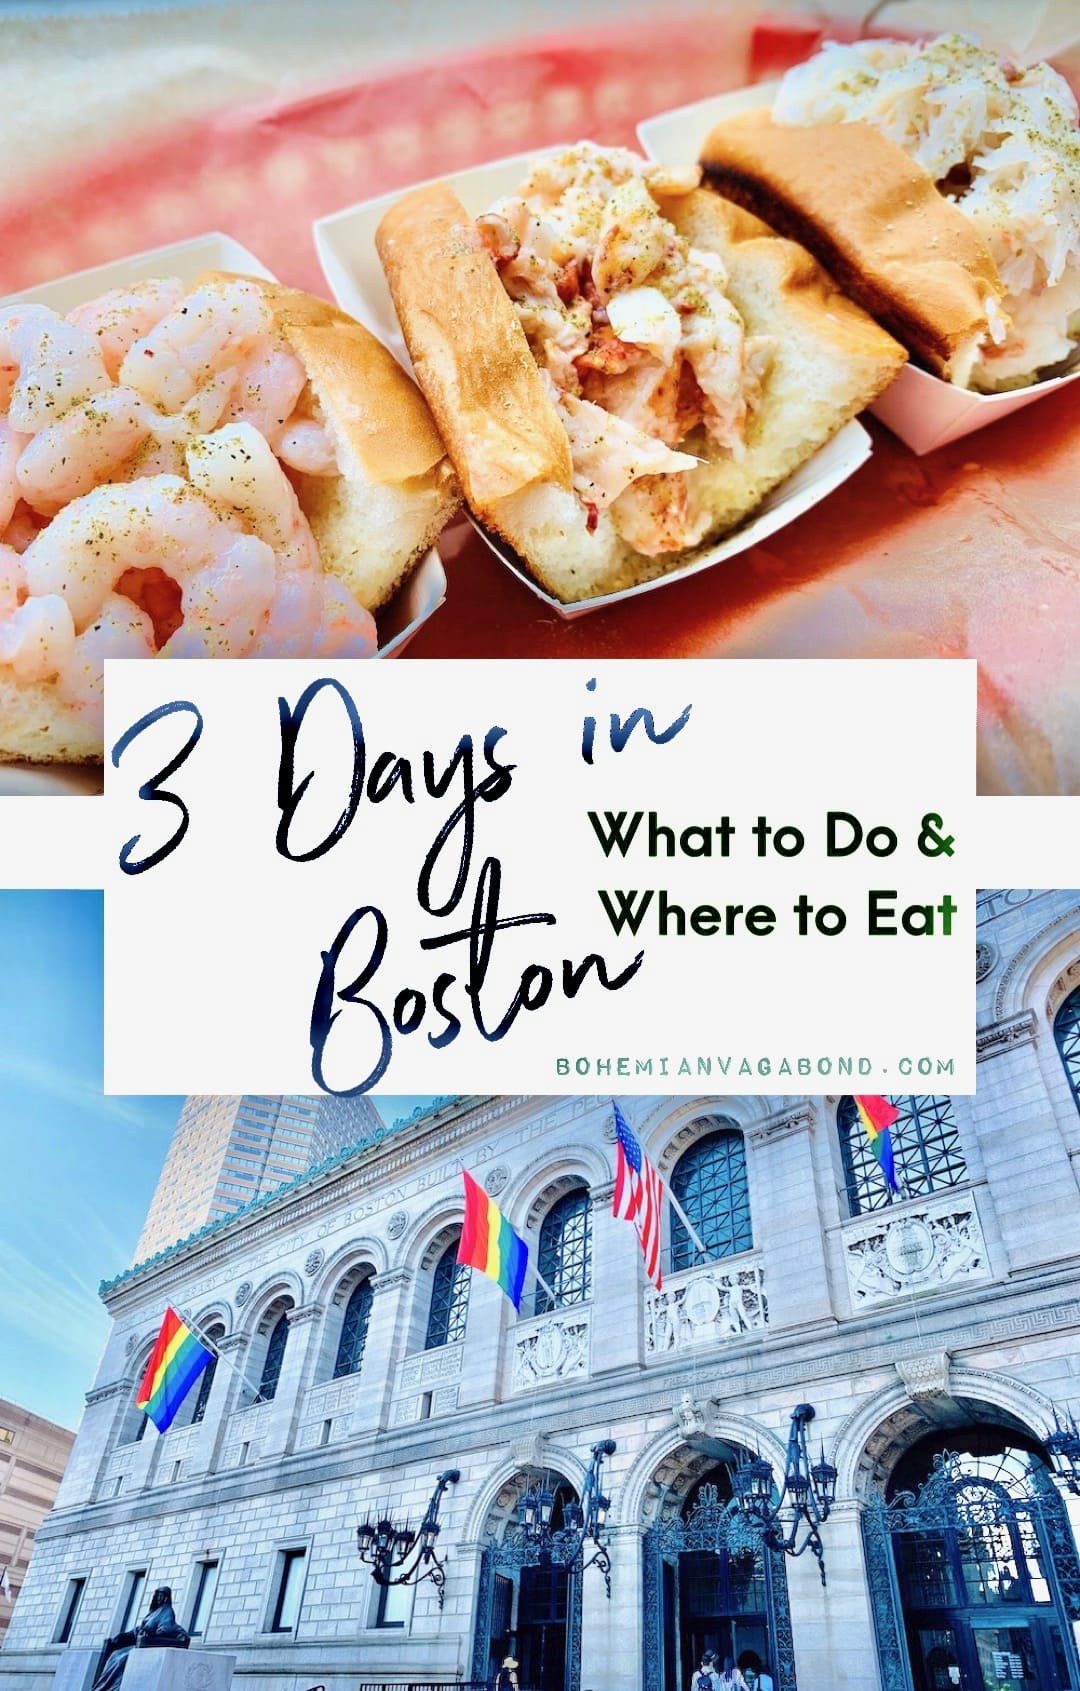 3 days in boston